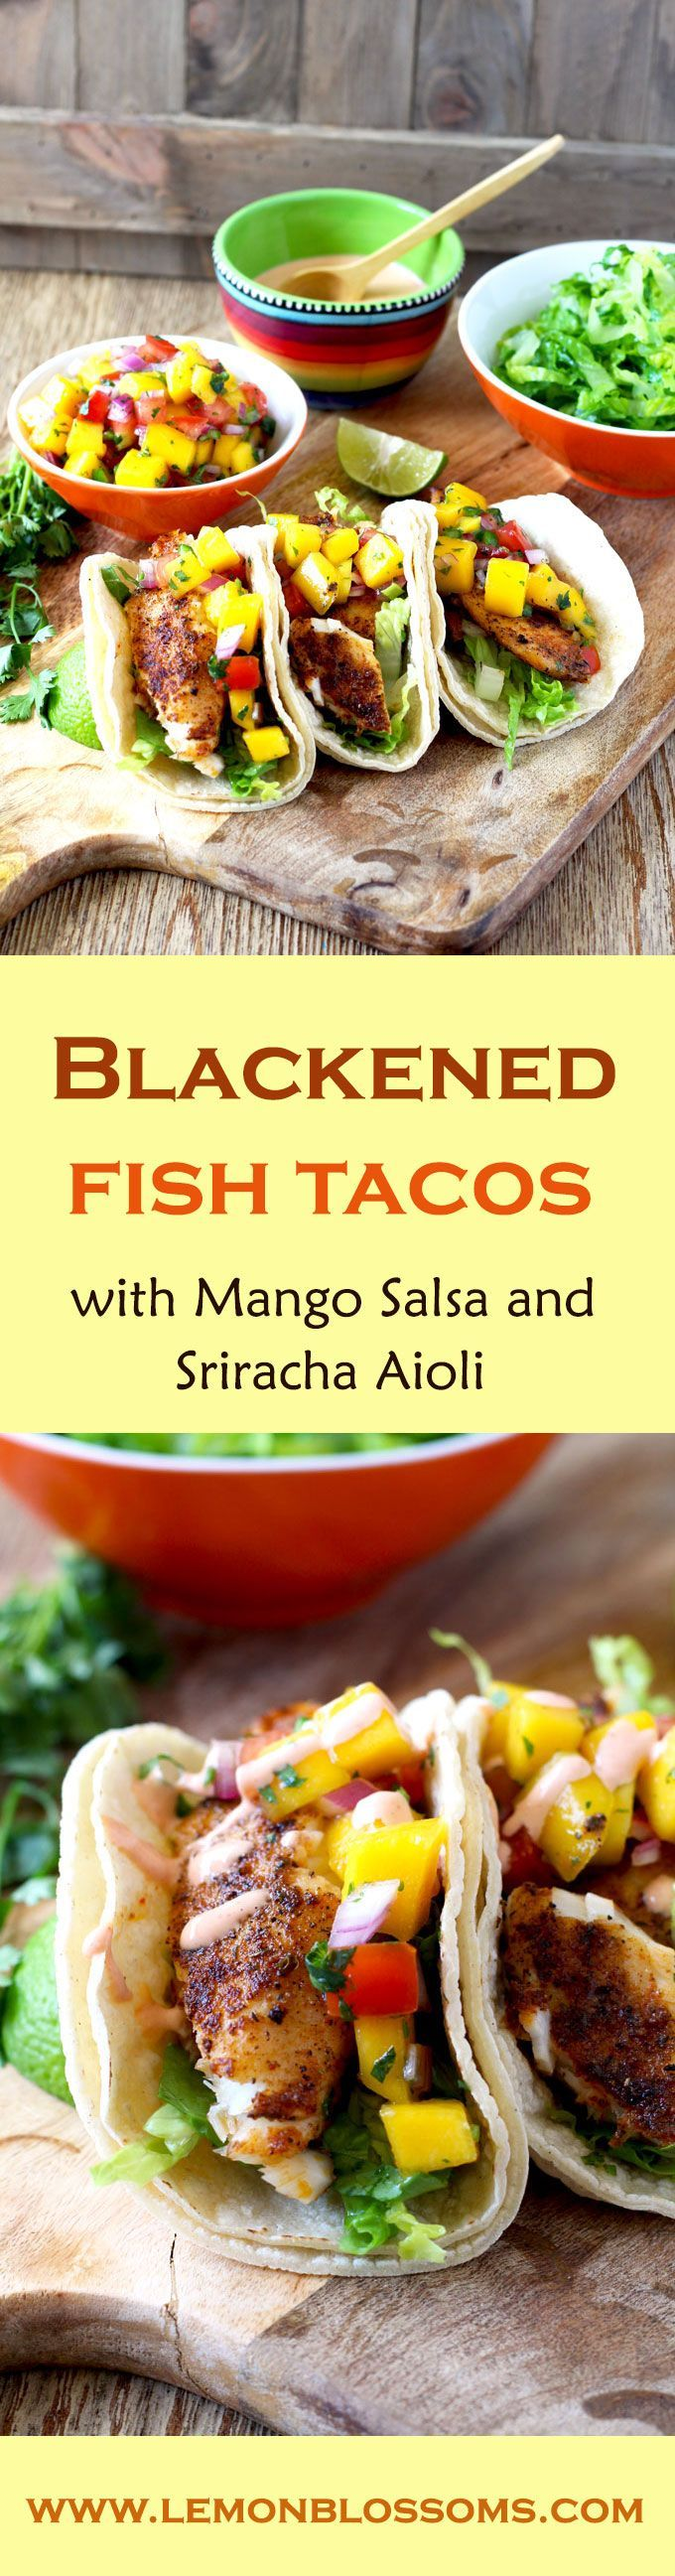 601 best images about tacos on pinterest blackened fish for How to cook cod for fish tacos